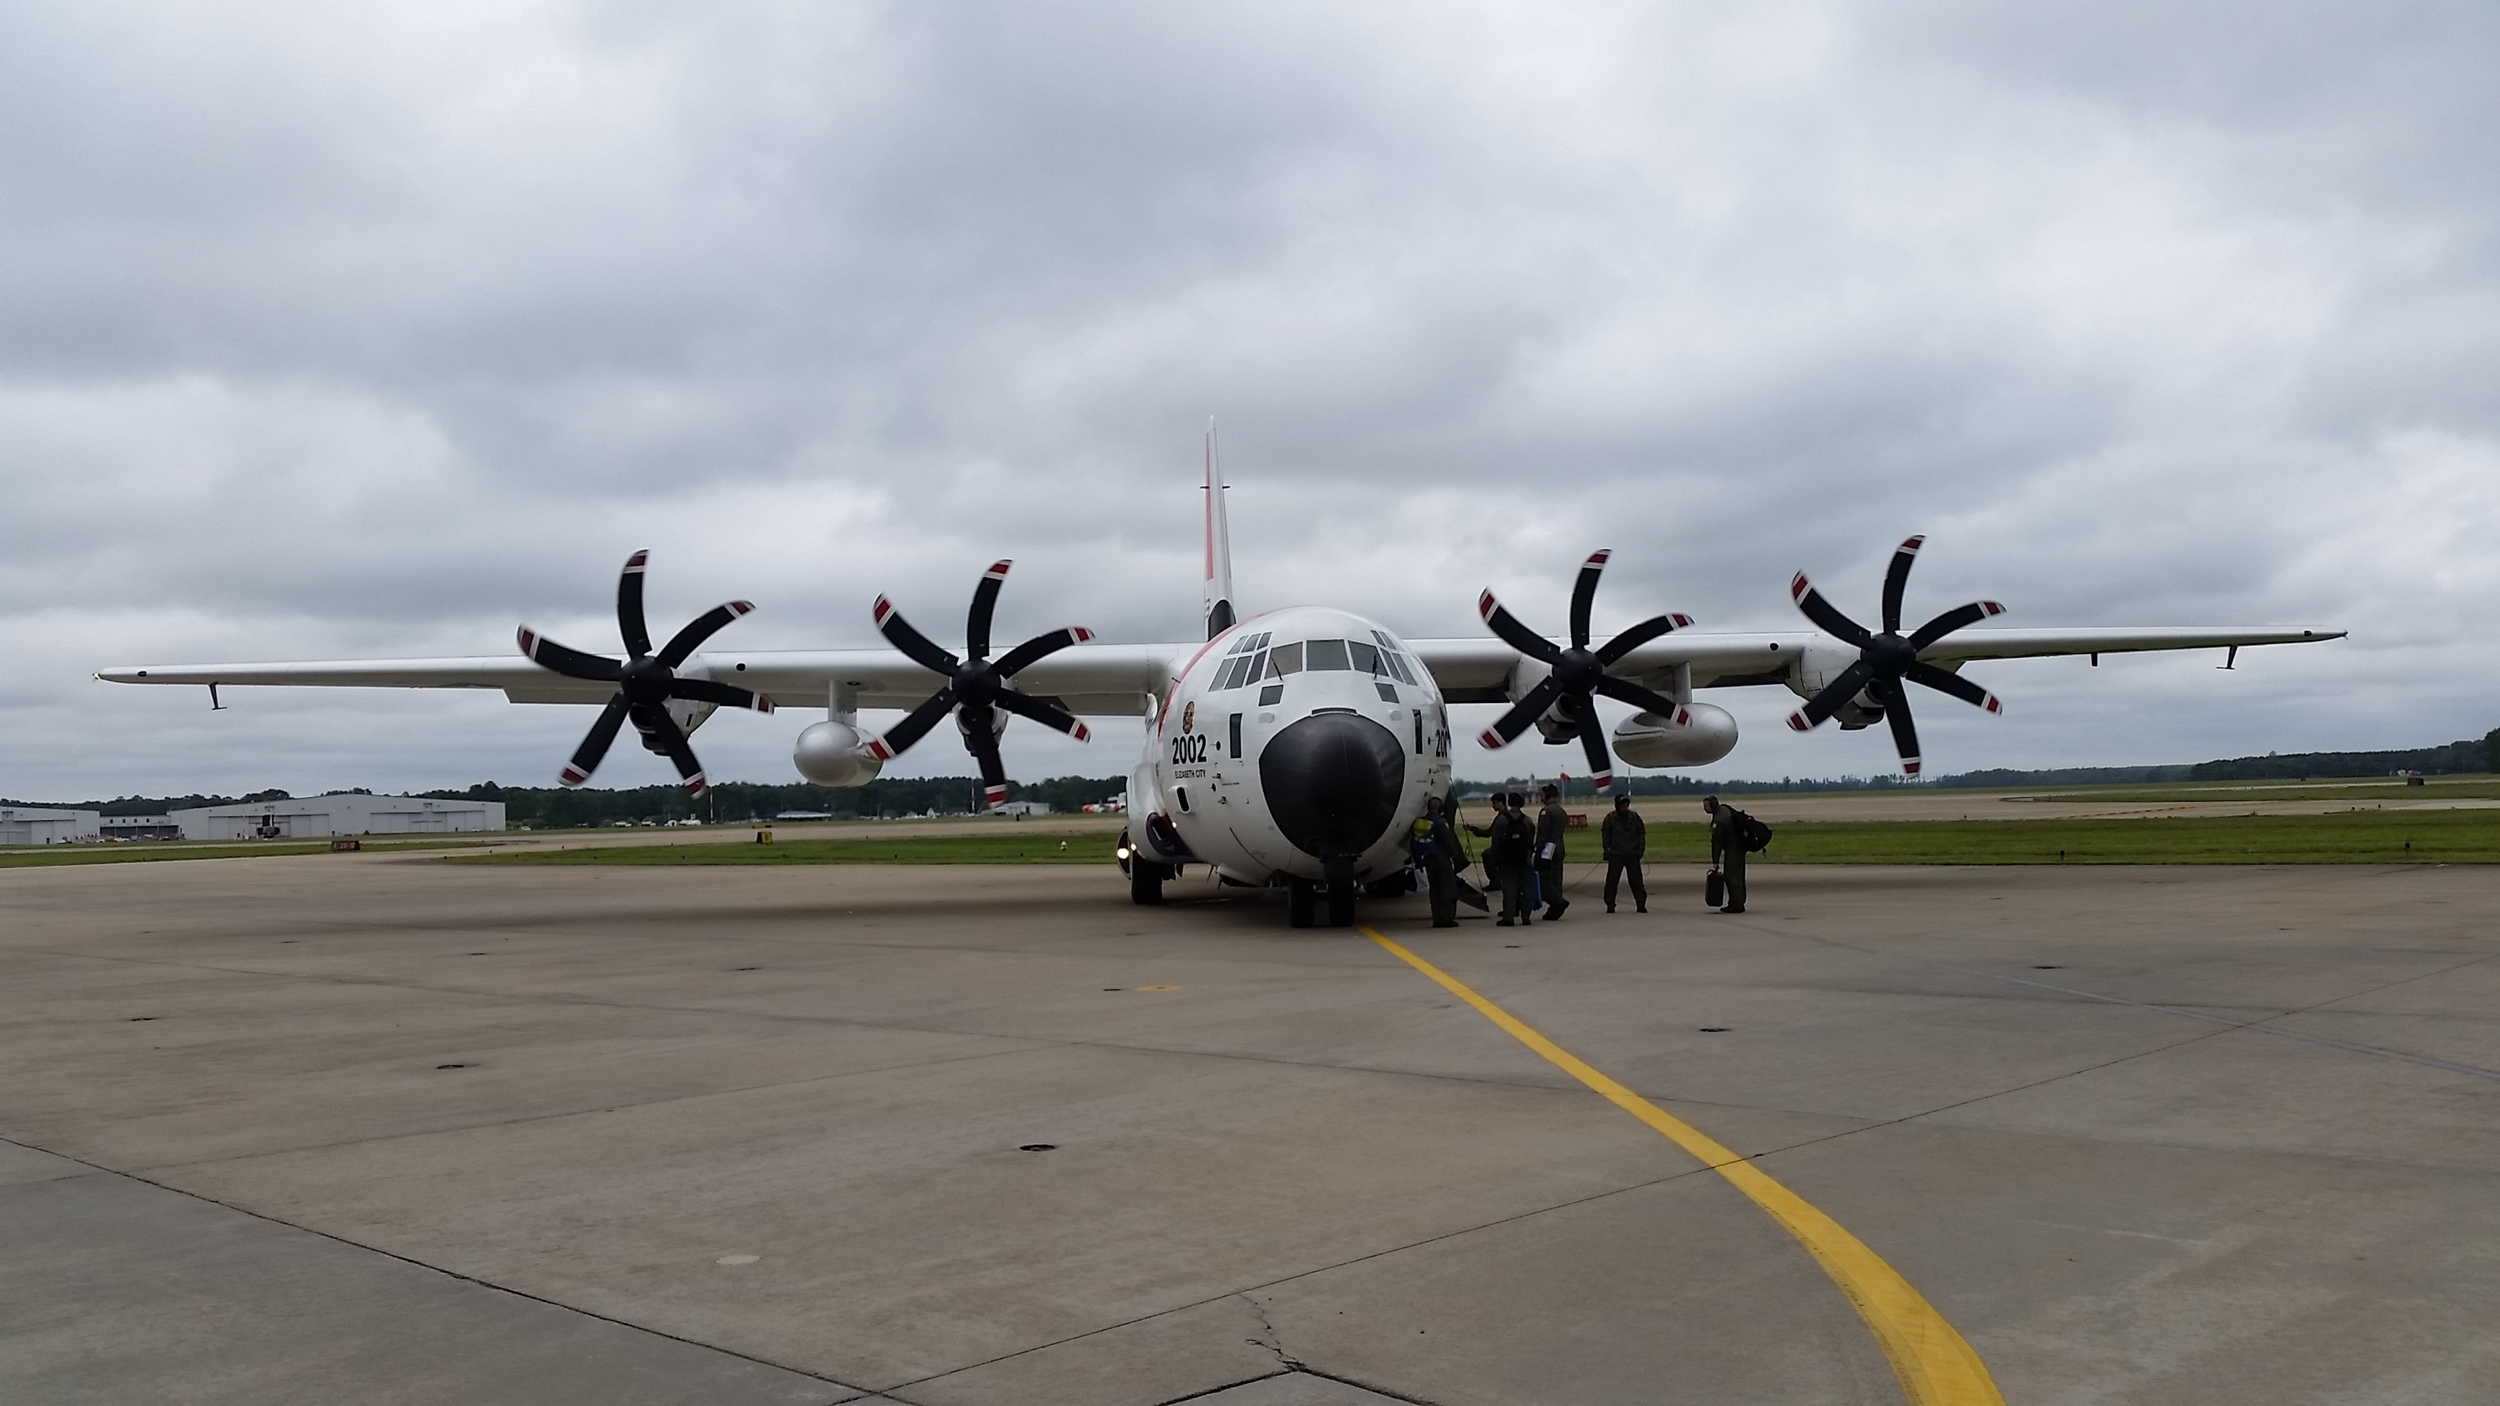 Cadets from the United States Coast Guard Academy board a HC-130J Hercules for an introduction flight